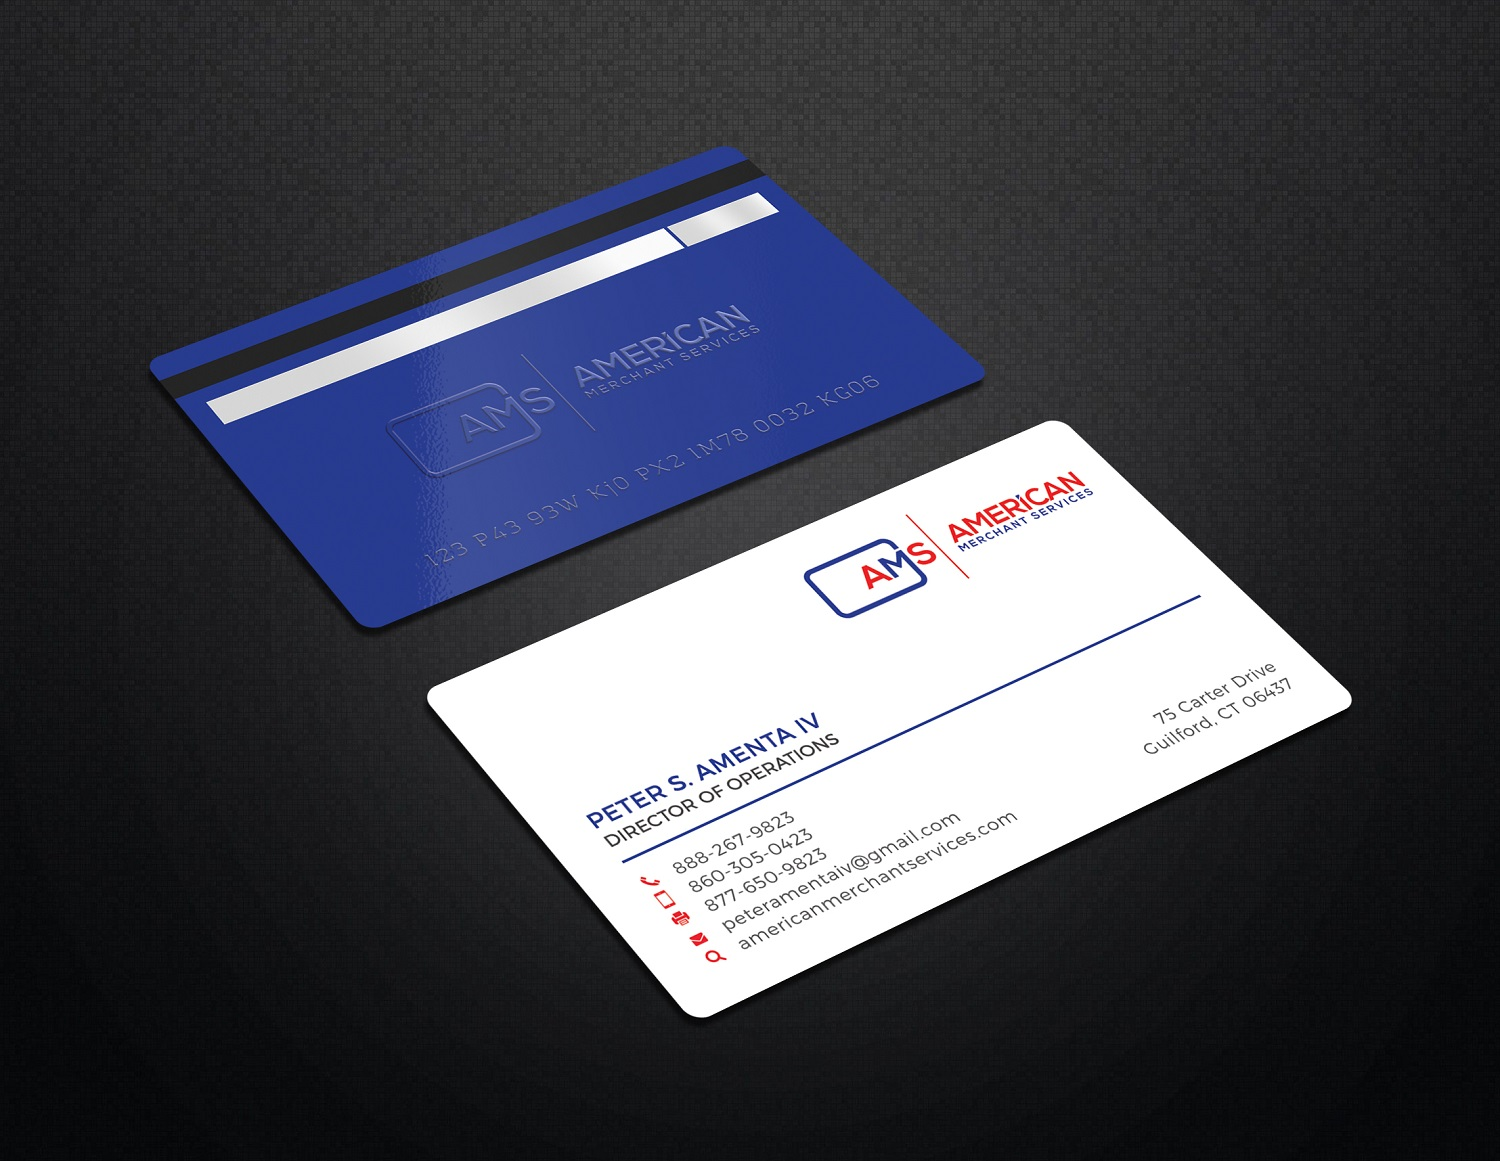 Elegant playful credit card business card design for american business card design by graphic flame for american merchant services llc design 15373545 colourmoves Gallery